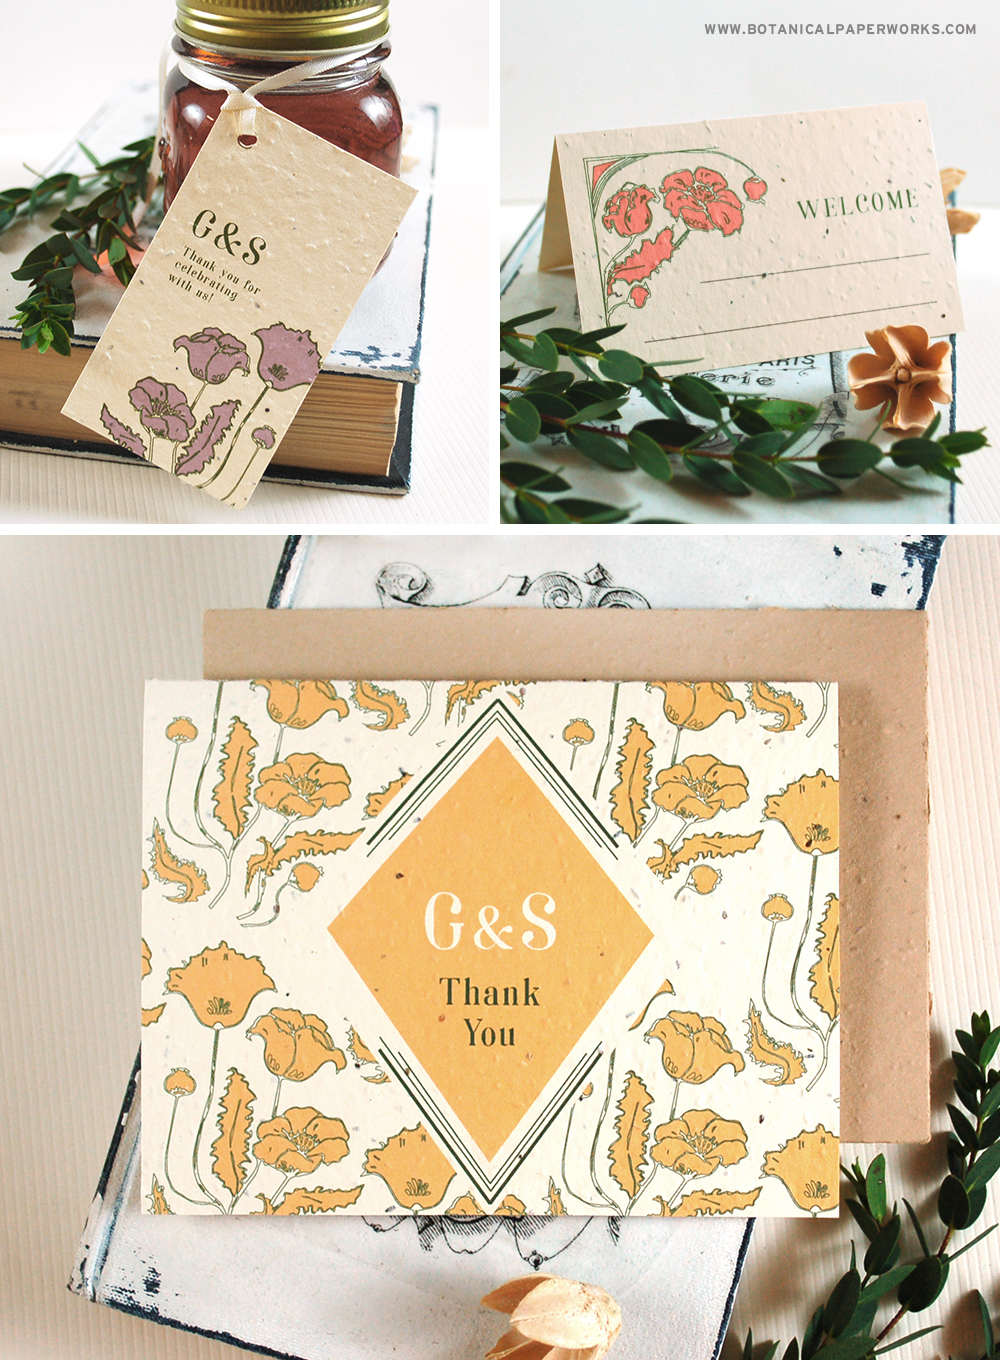 Inspired by the Art Nouveau style of art, this beautifully crafted seed paper wedding collection is filled with elegance and has an eclectic vibe you'll fall in love with.